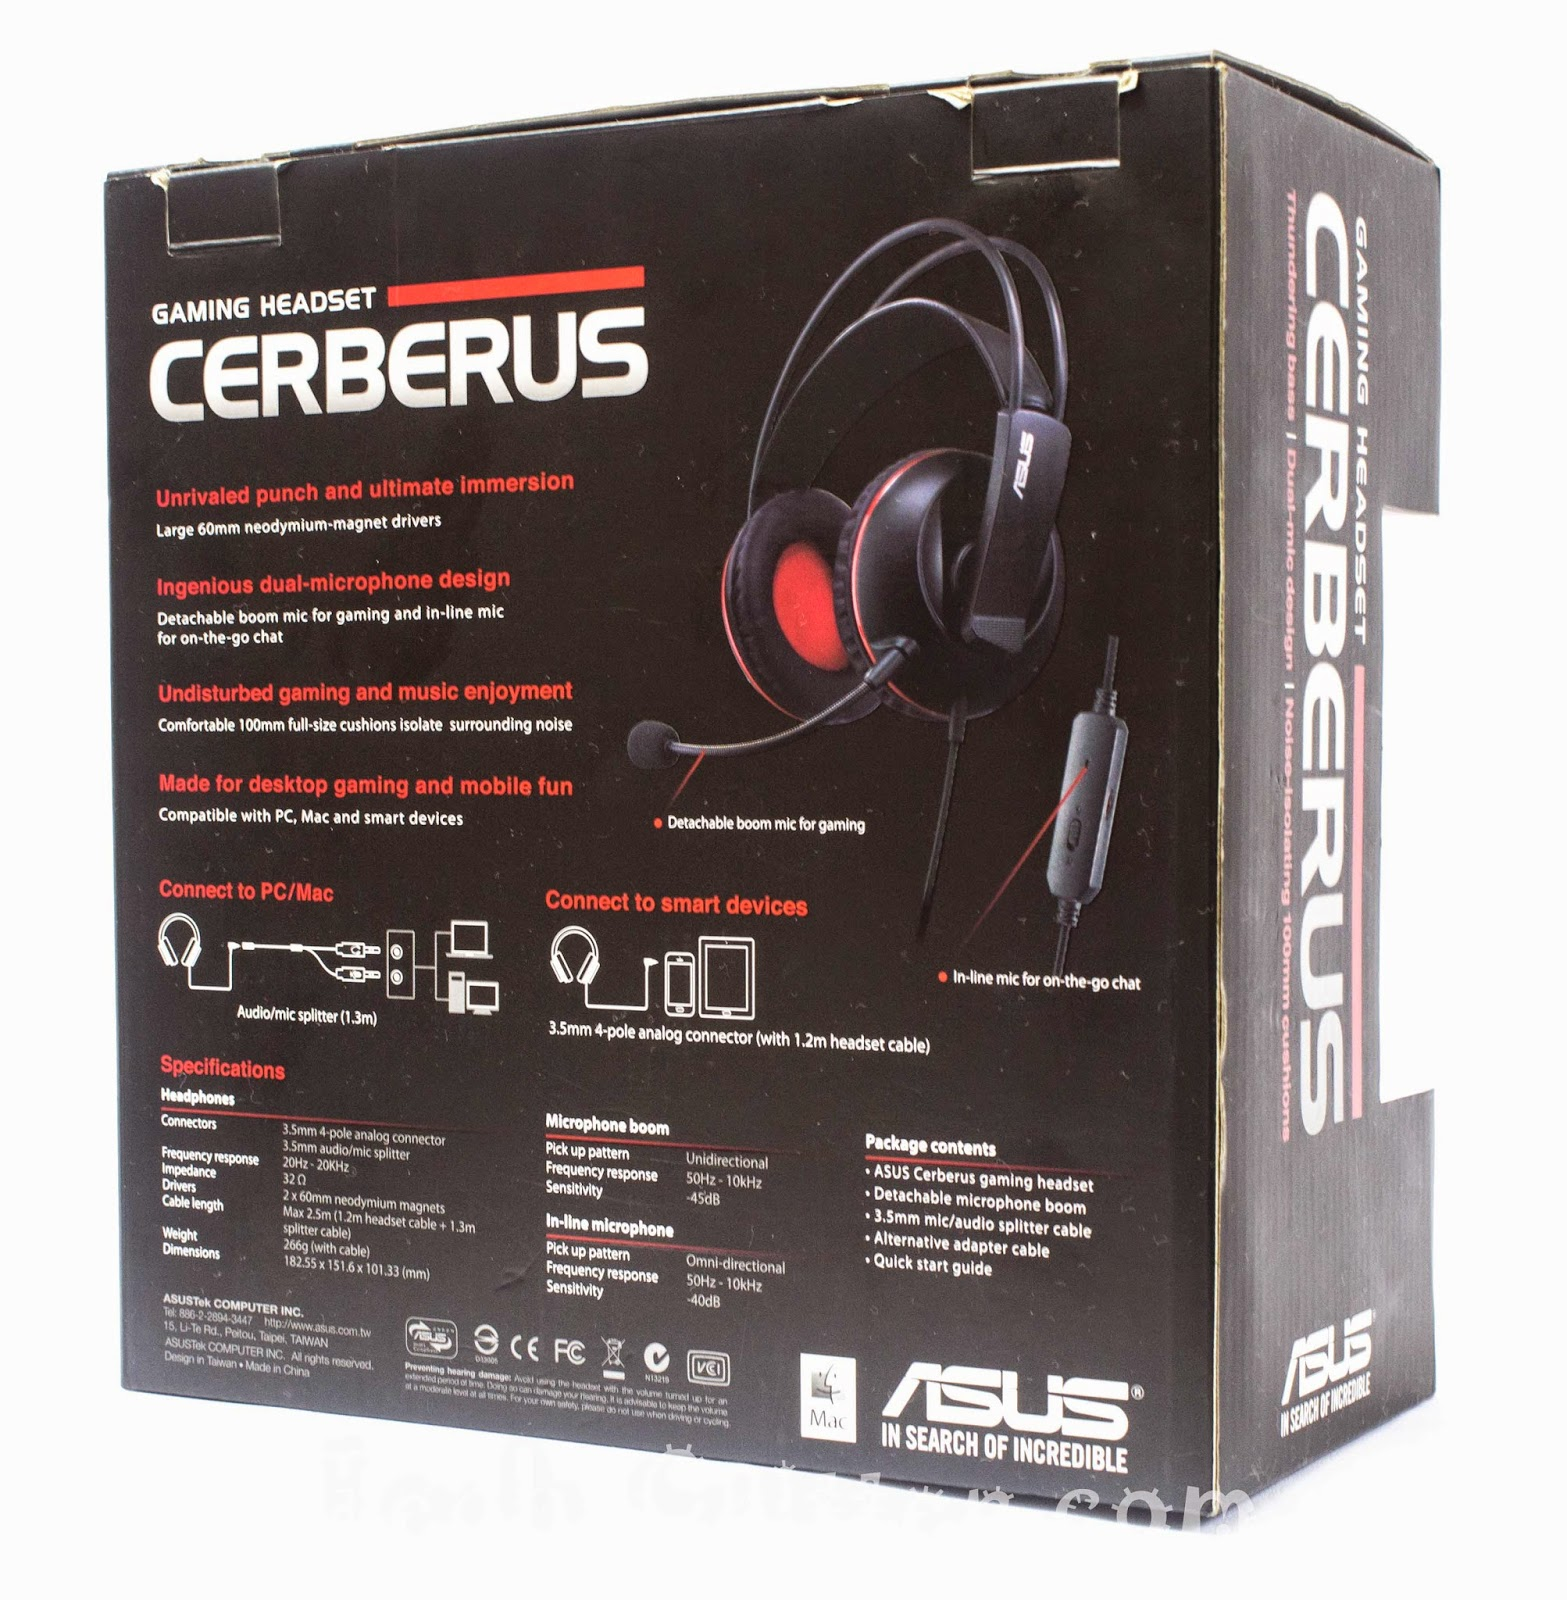 Unboxing & Review: ASUS Cerberus Gaming Headset 4